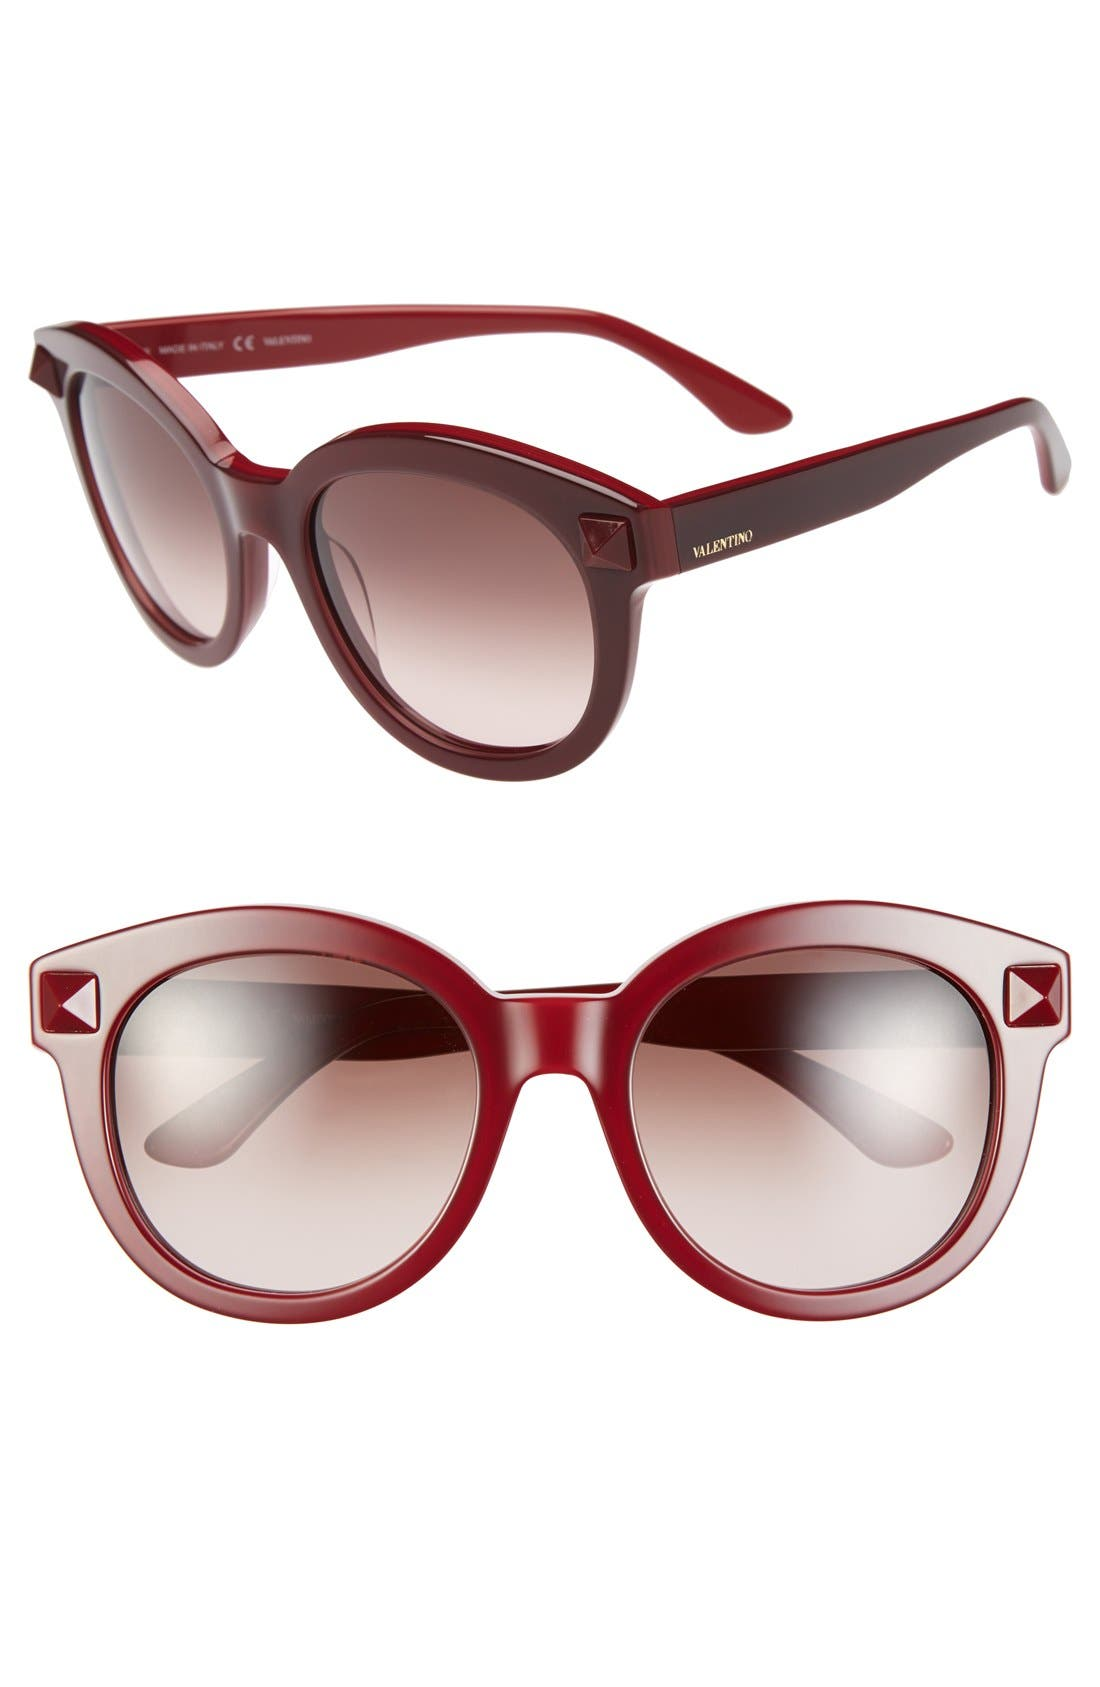 Main Image - Valentino 'Rockstud' 54mm Semi Oval Cat Eye Sunglasses